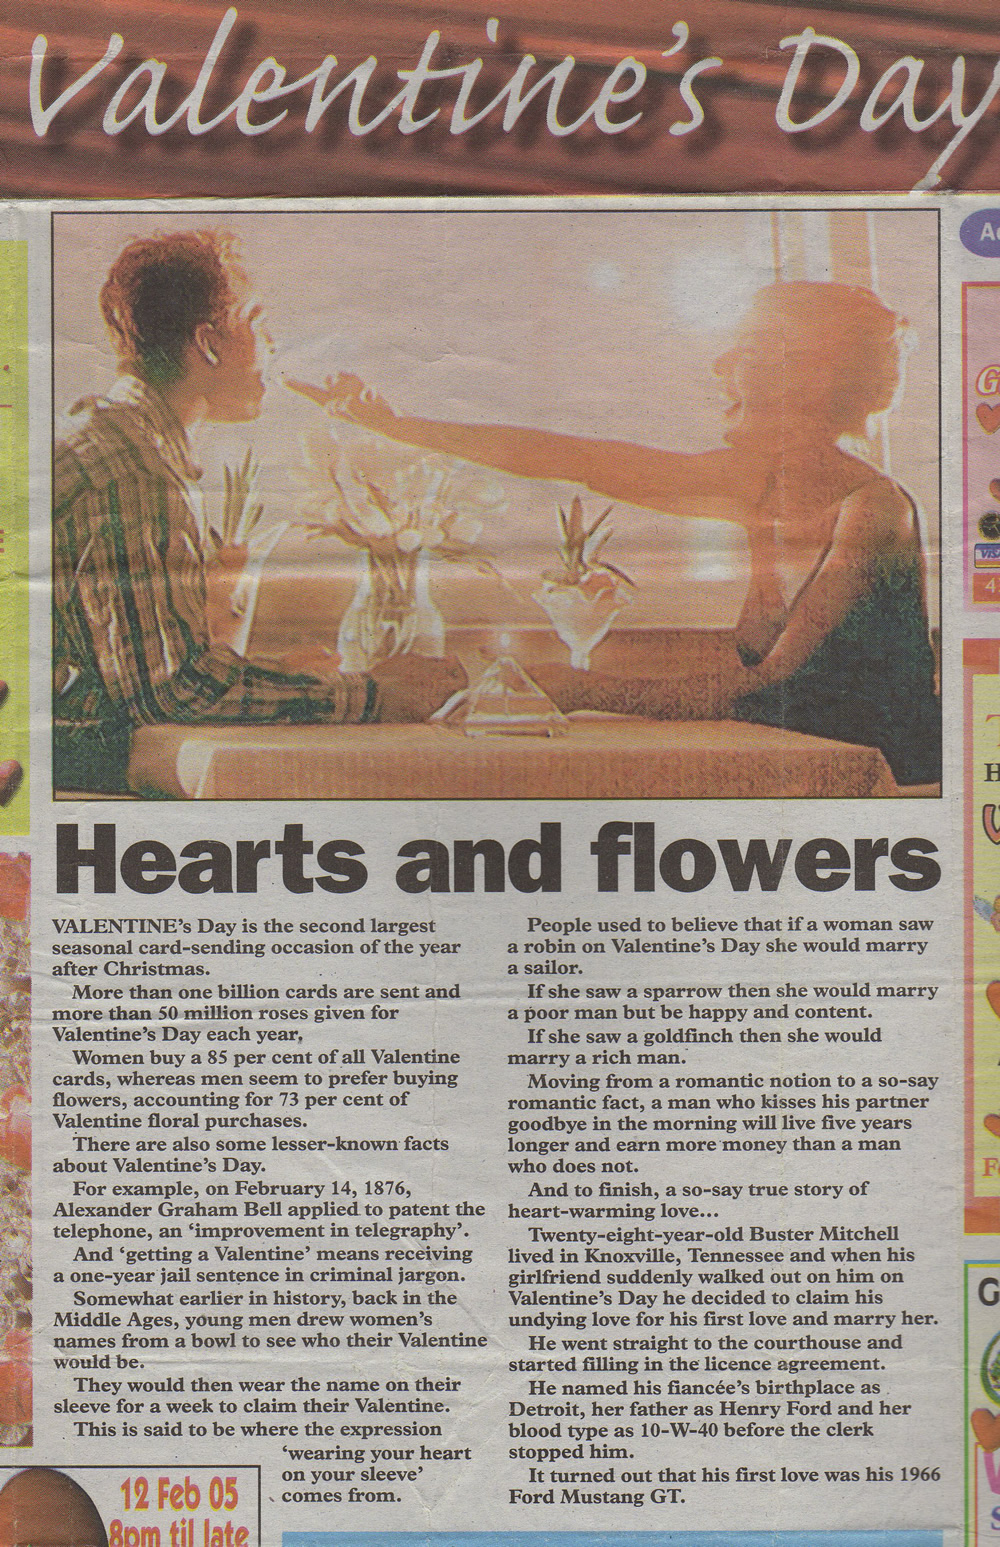 how to write newspaper articles writing for newspapers see christopher fielden valentines day article mercury 3rd 2005